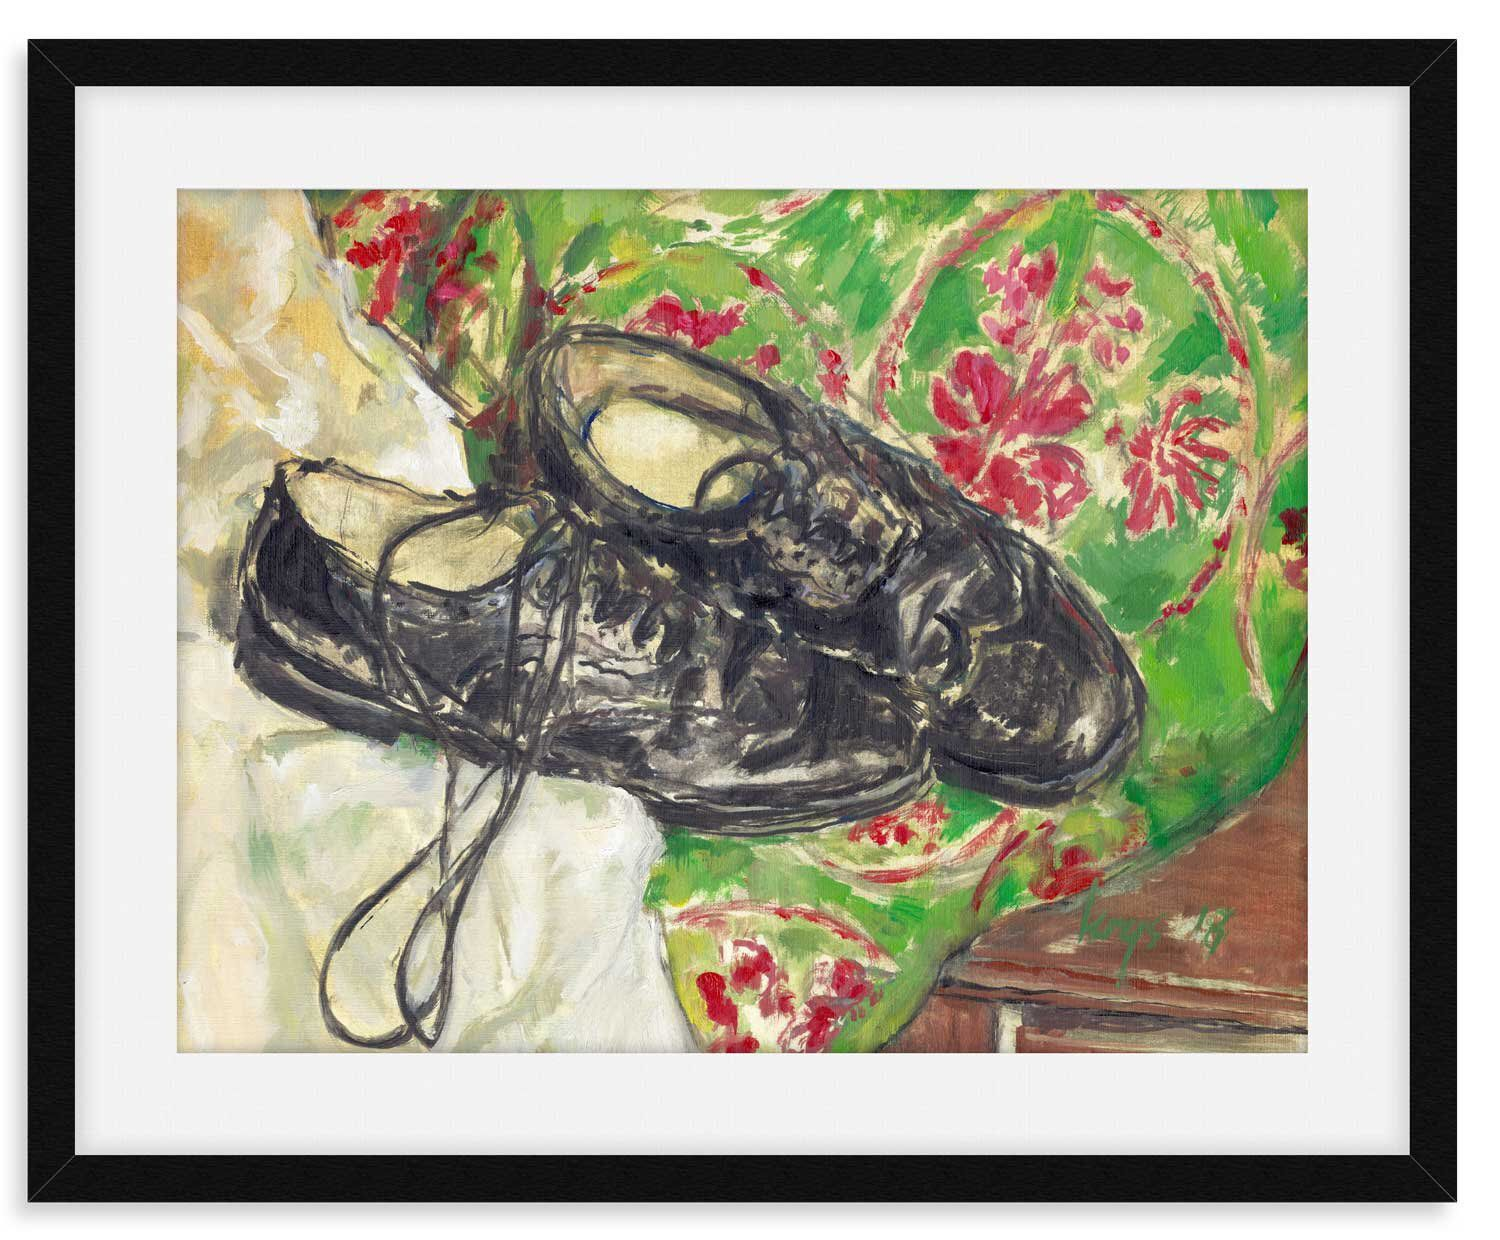 Scottish Kilt Shoes Large Printable File From Original Oil Painting Instant Download Shoe Painting Printable Up To 70x60cm Or 40x30